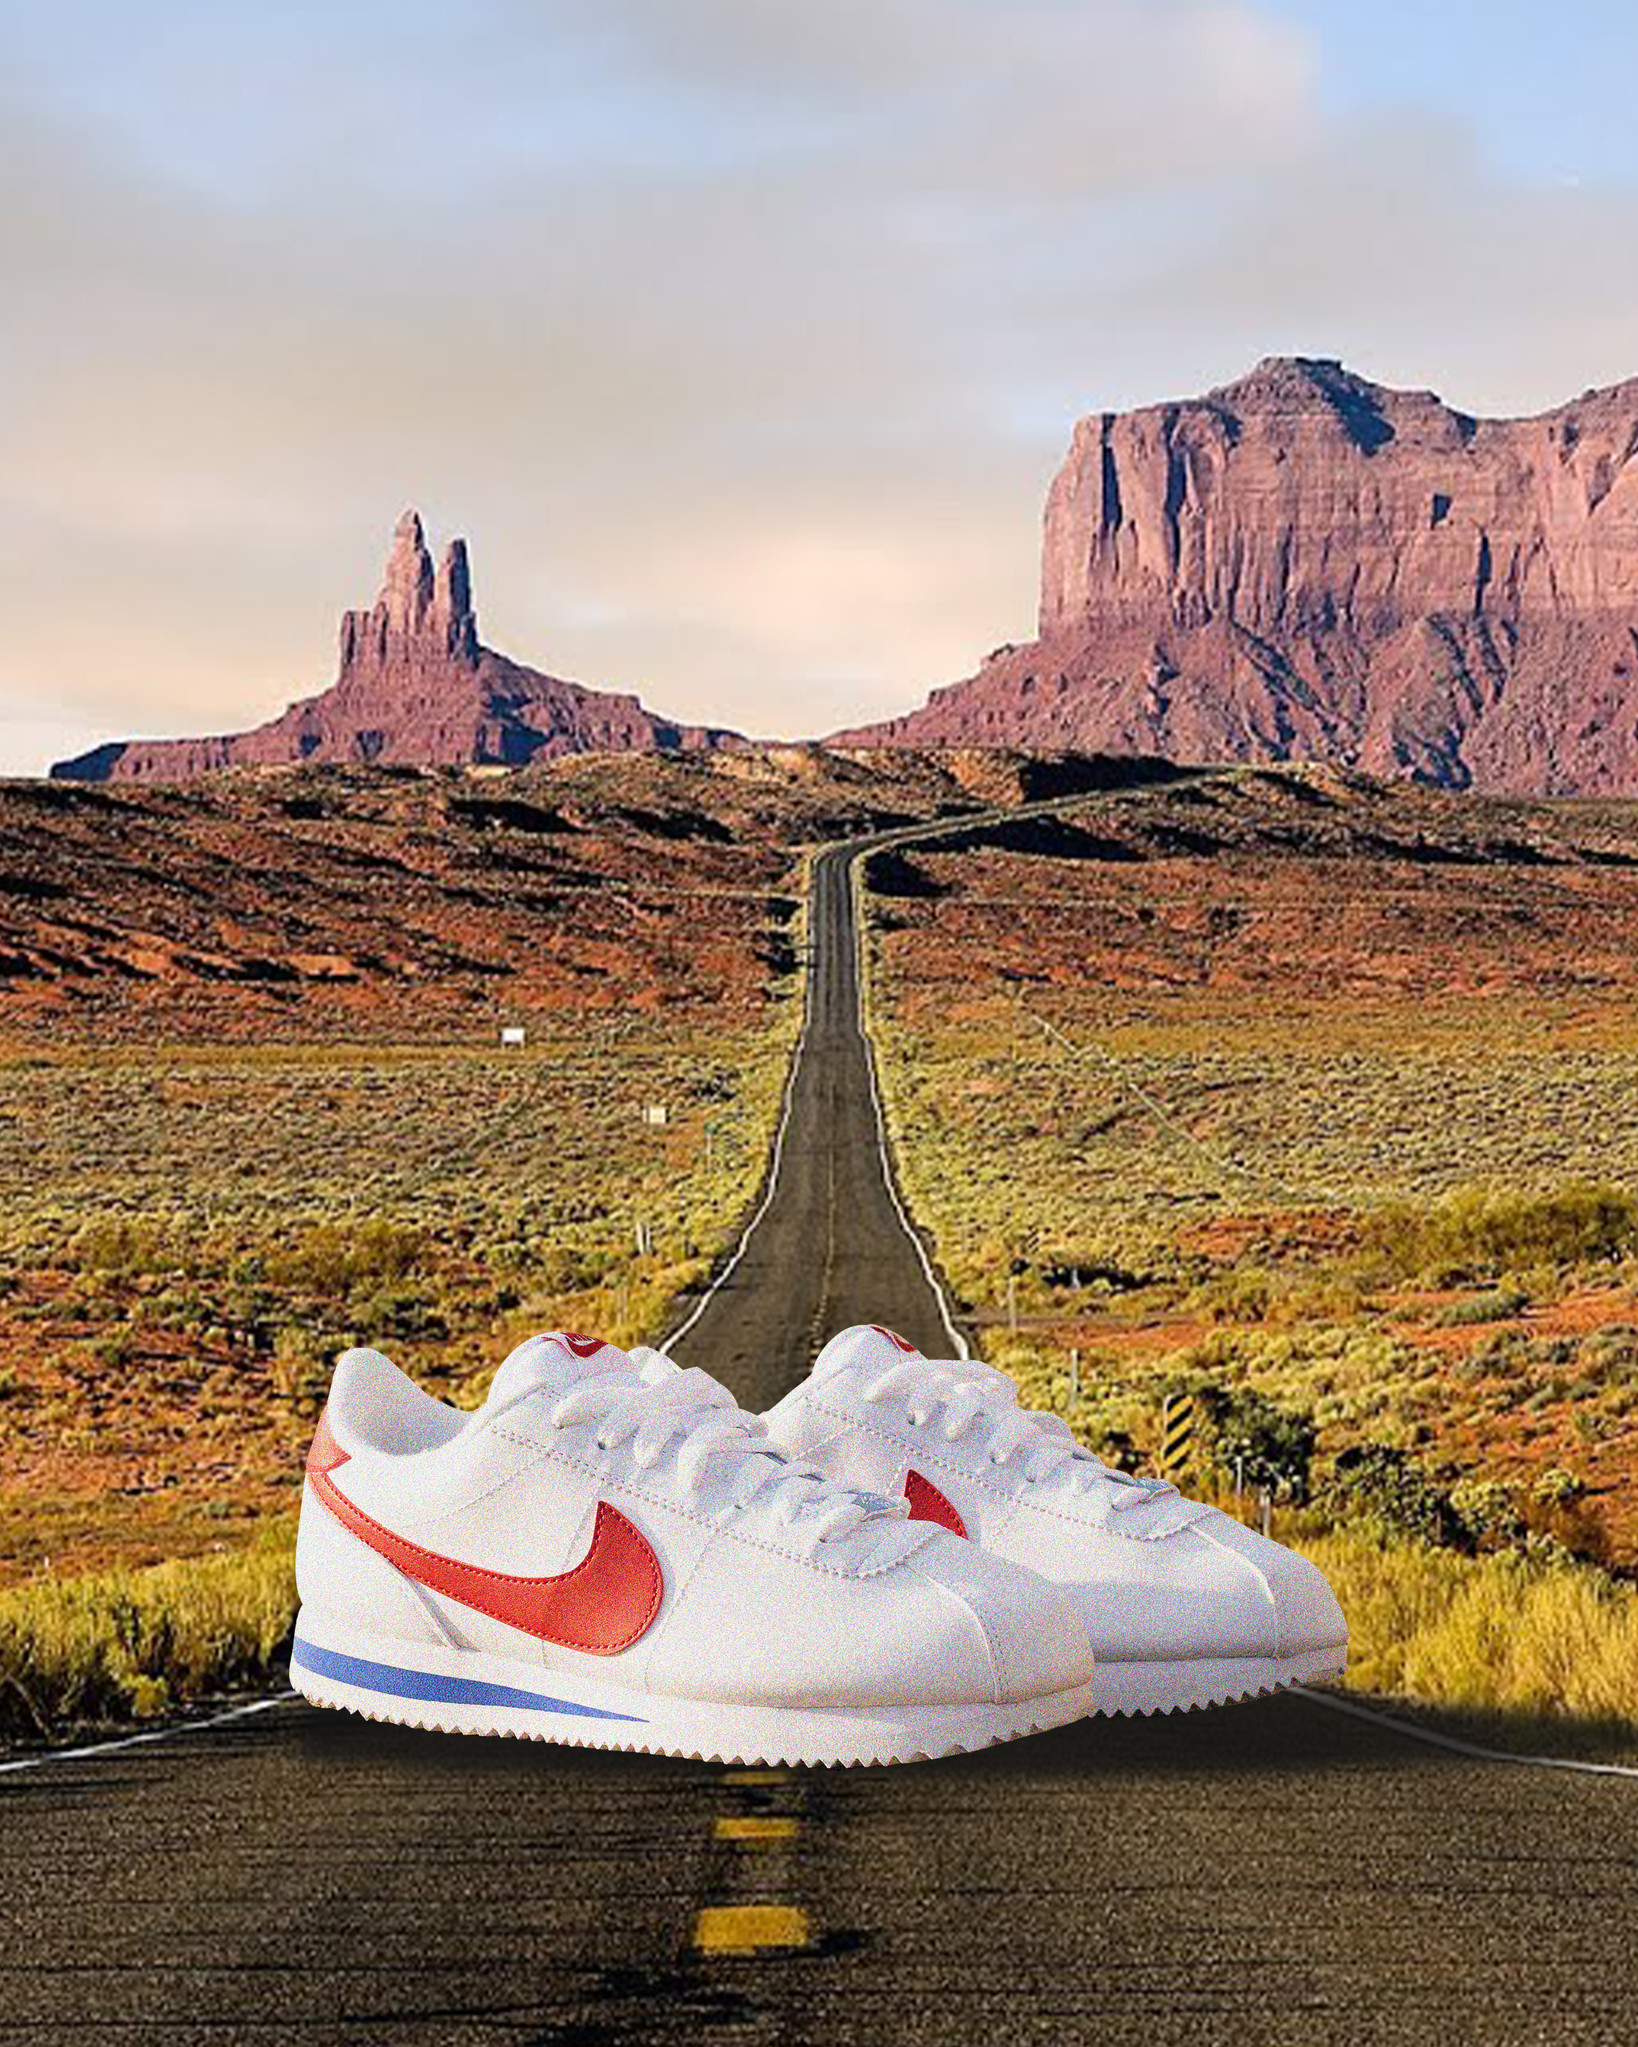 Nike Nike Cortez white/red/blue